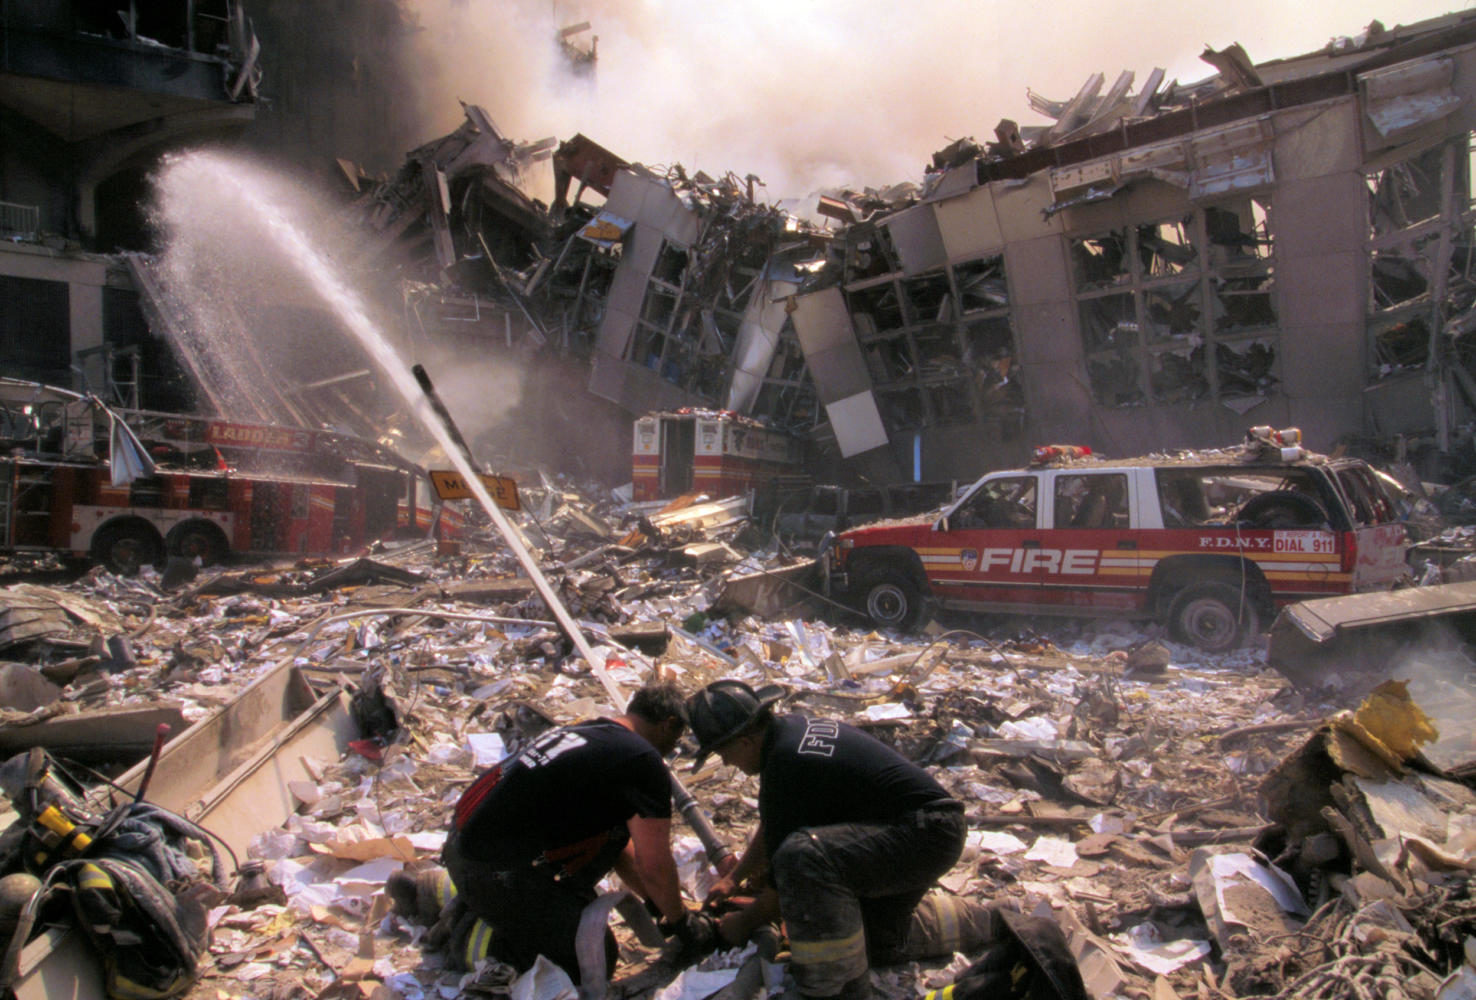 Firefighters+douse+flames+and+search+for+survivors+in+the+rubble+of+the+Twin+Towers+in+the+aftermath+of+the+Sept.+11+attacks.